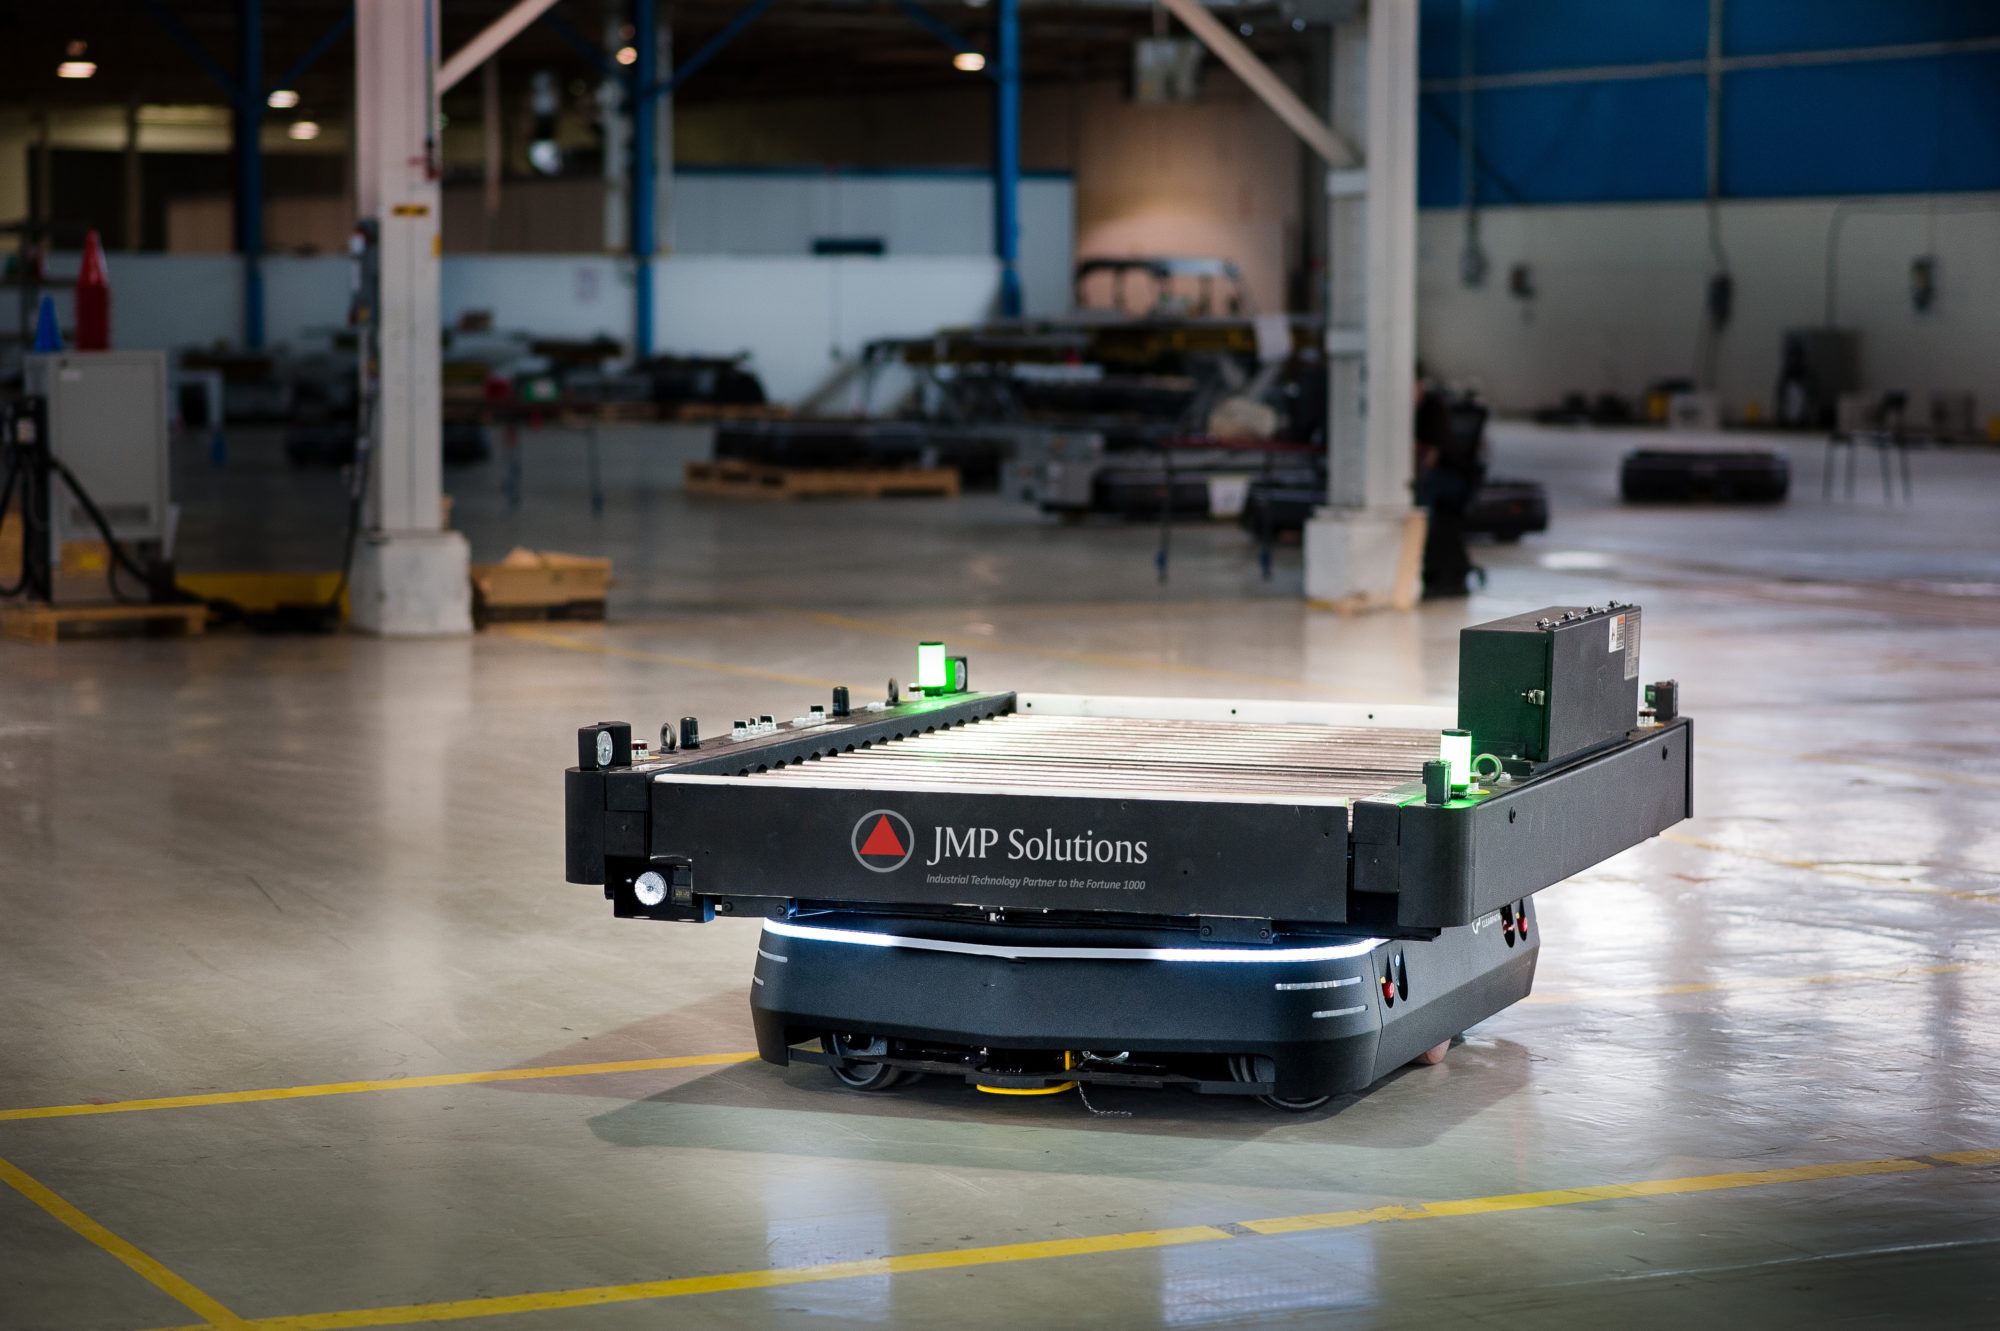 Automated guided vehicle in warehouse